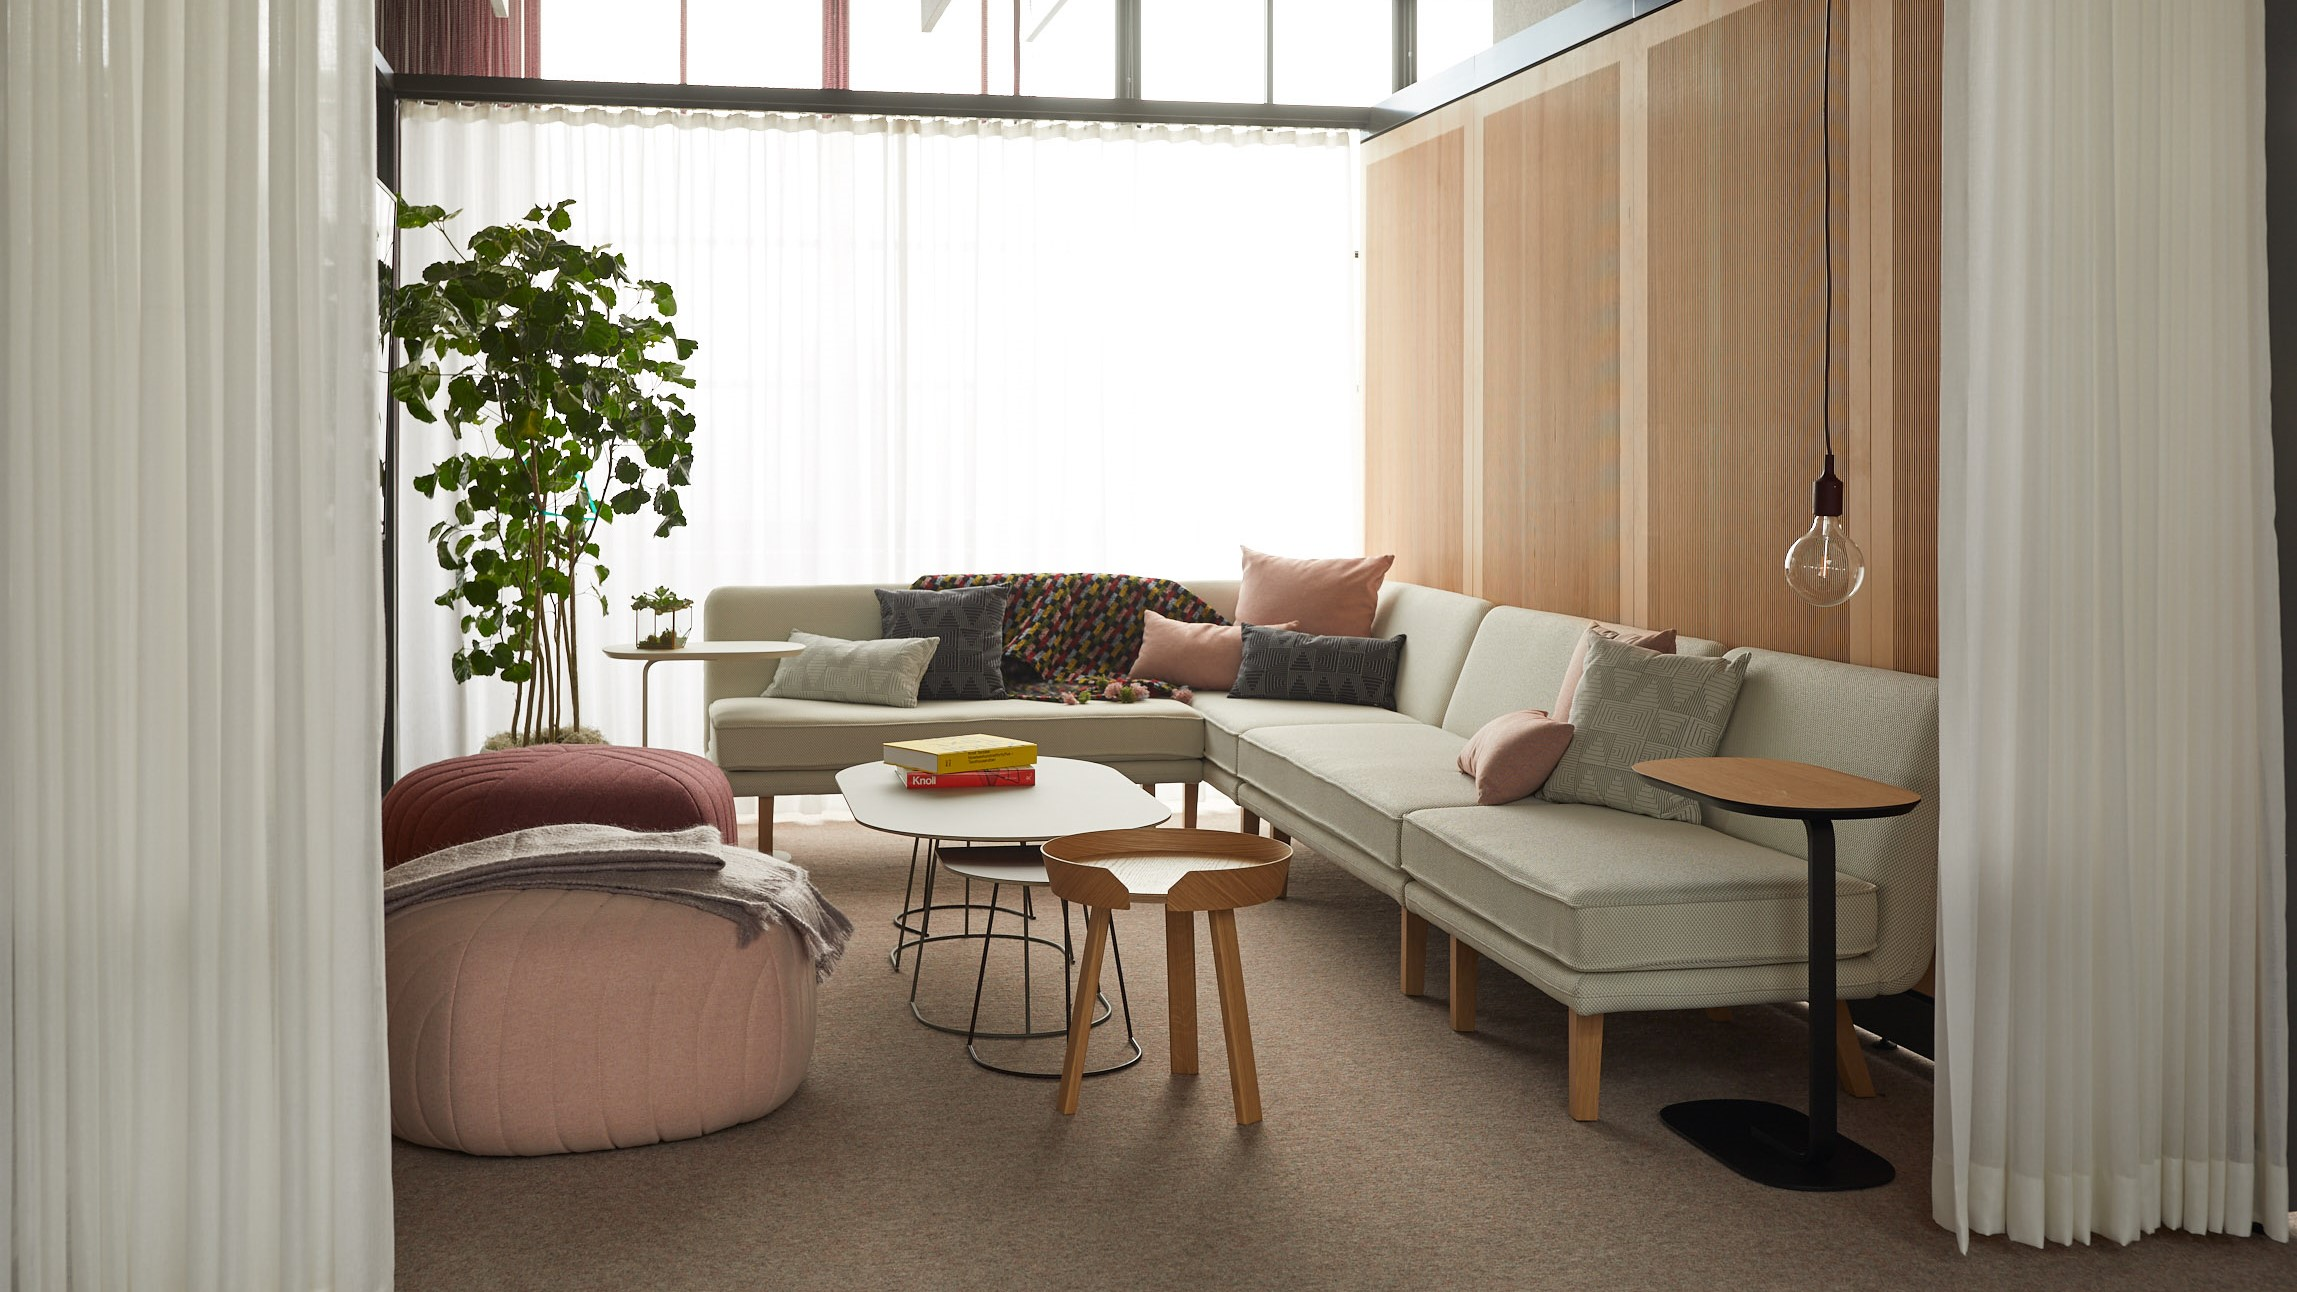 pastel colored room with lounge furniture and freestanding walls with curtains